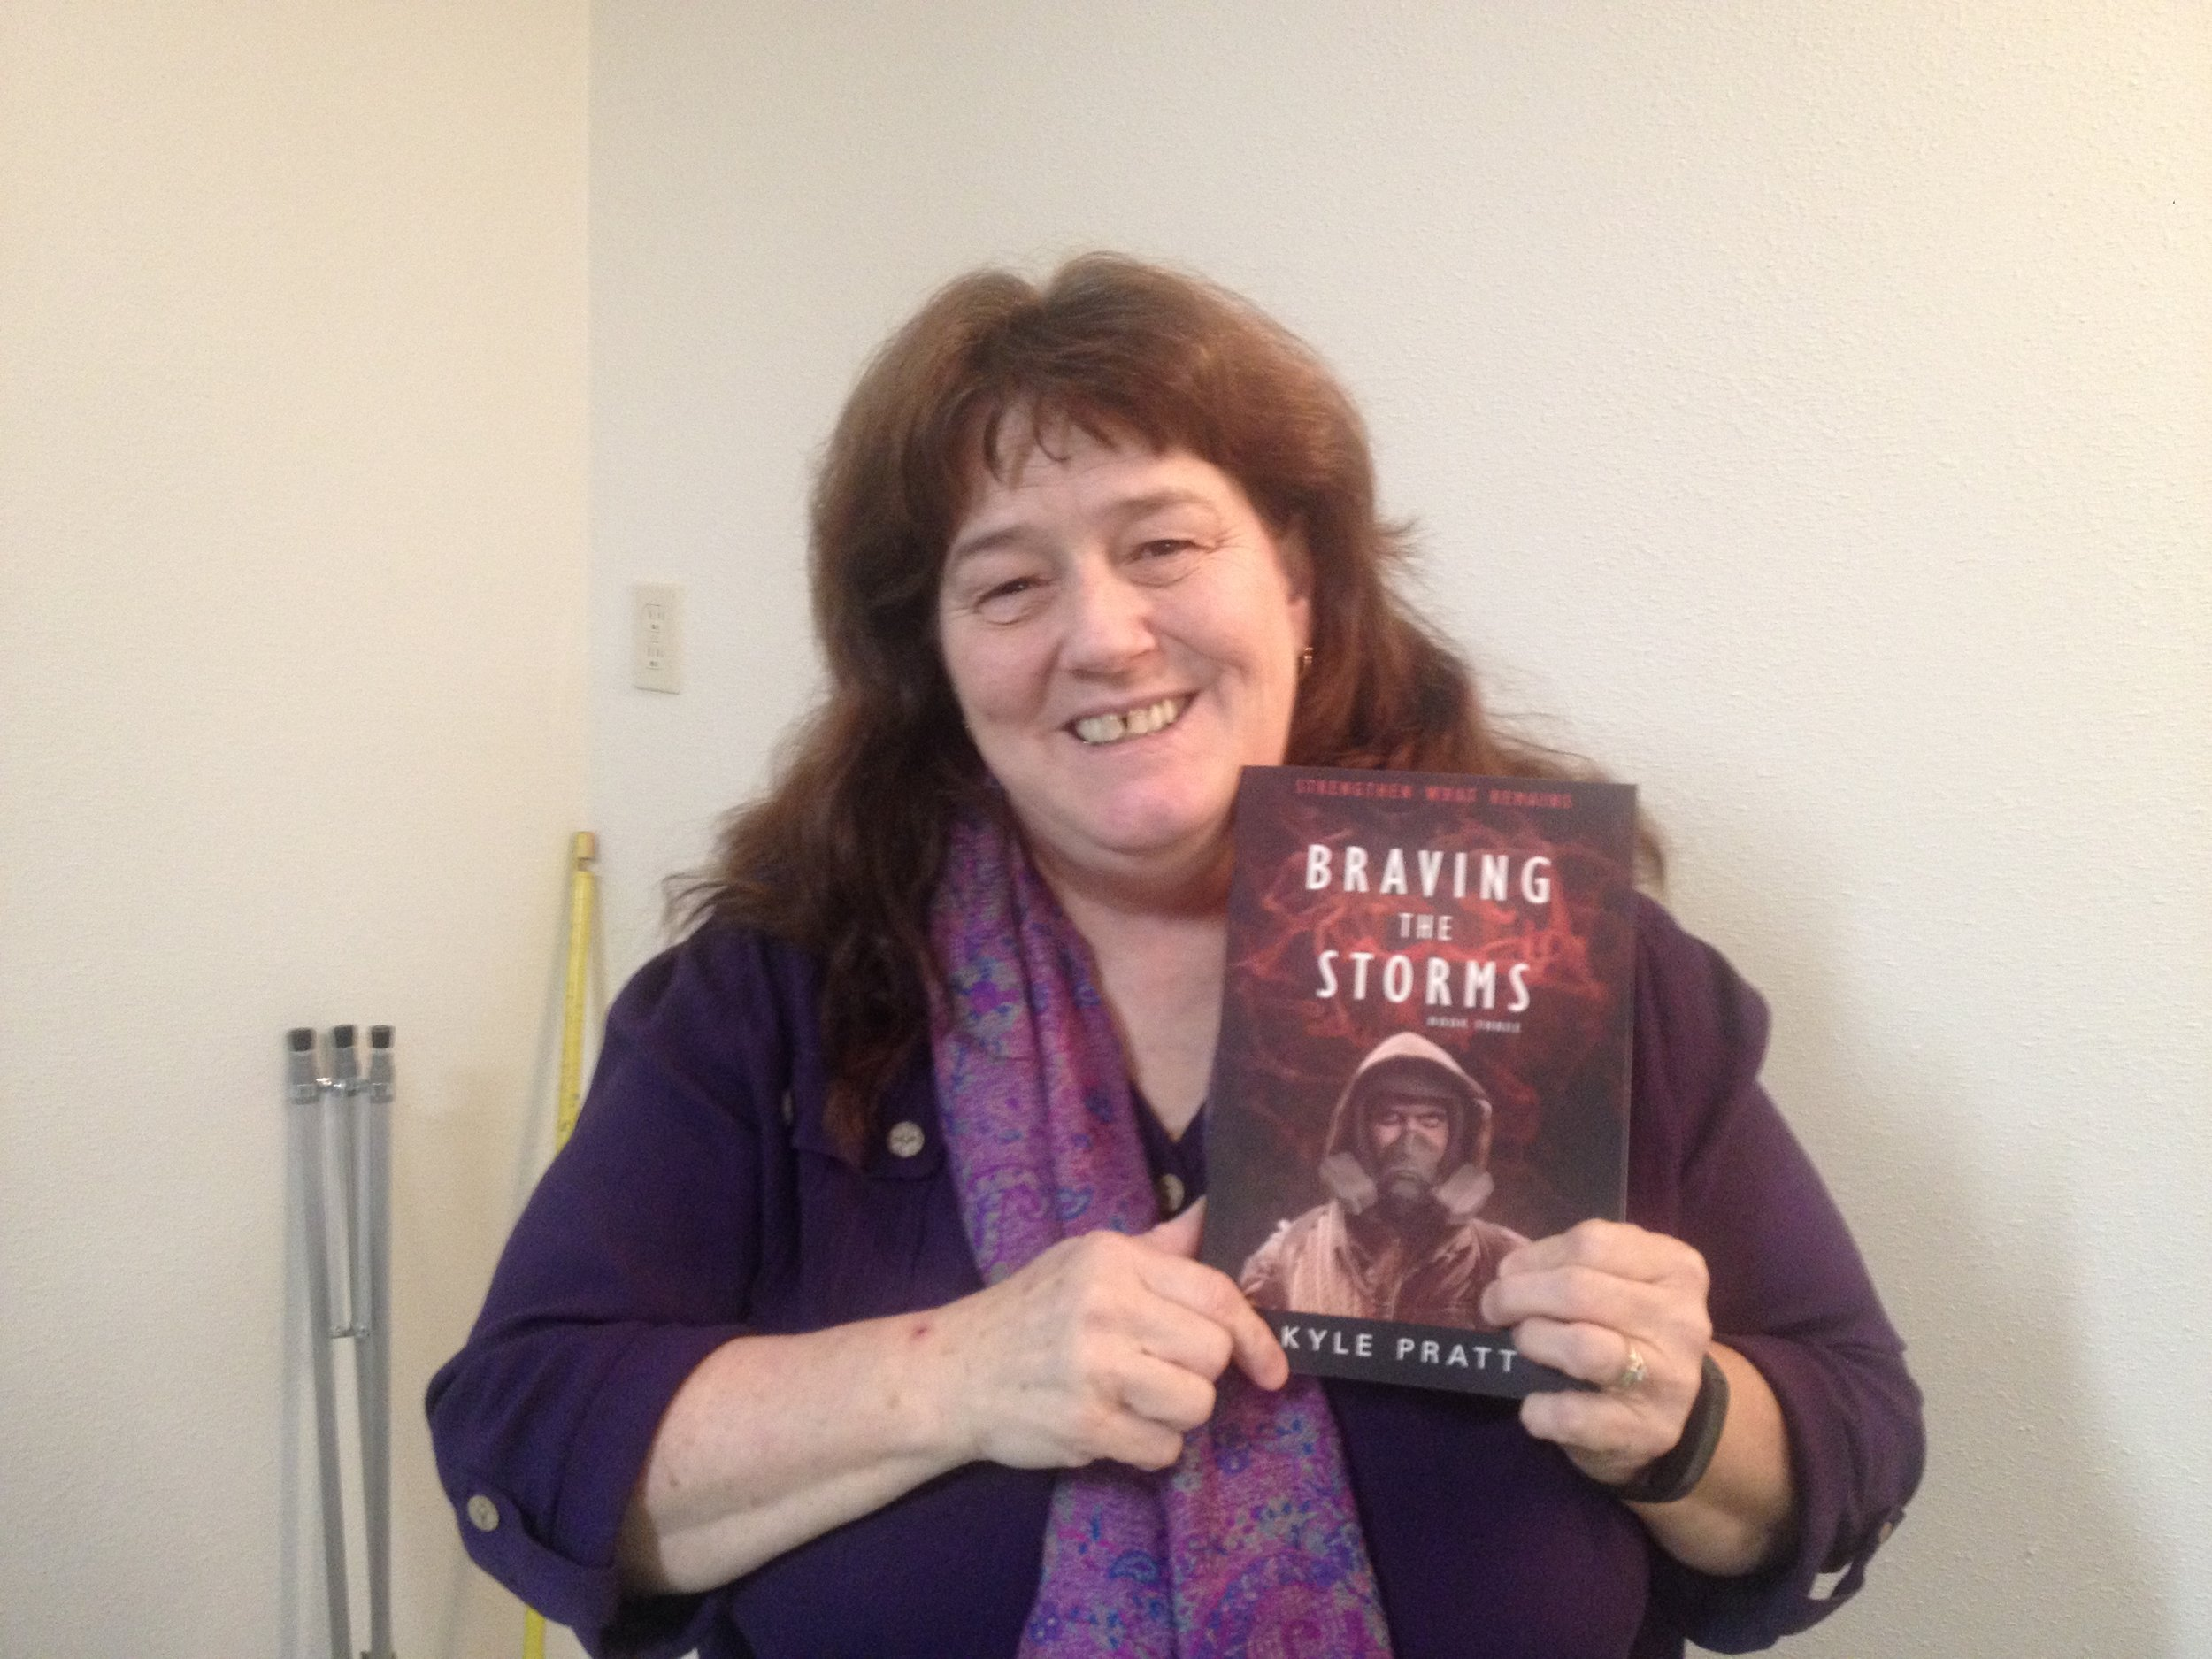 Julie from Toledo, Washington State, with a copy of  Braving the Storms . She told me that she has already read  Through Many Fires  and  A Time to Endure .